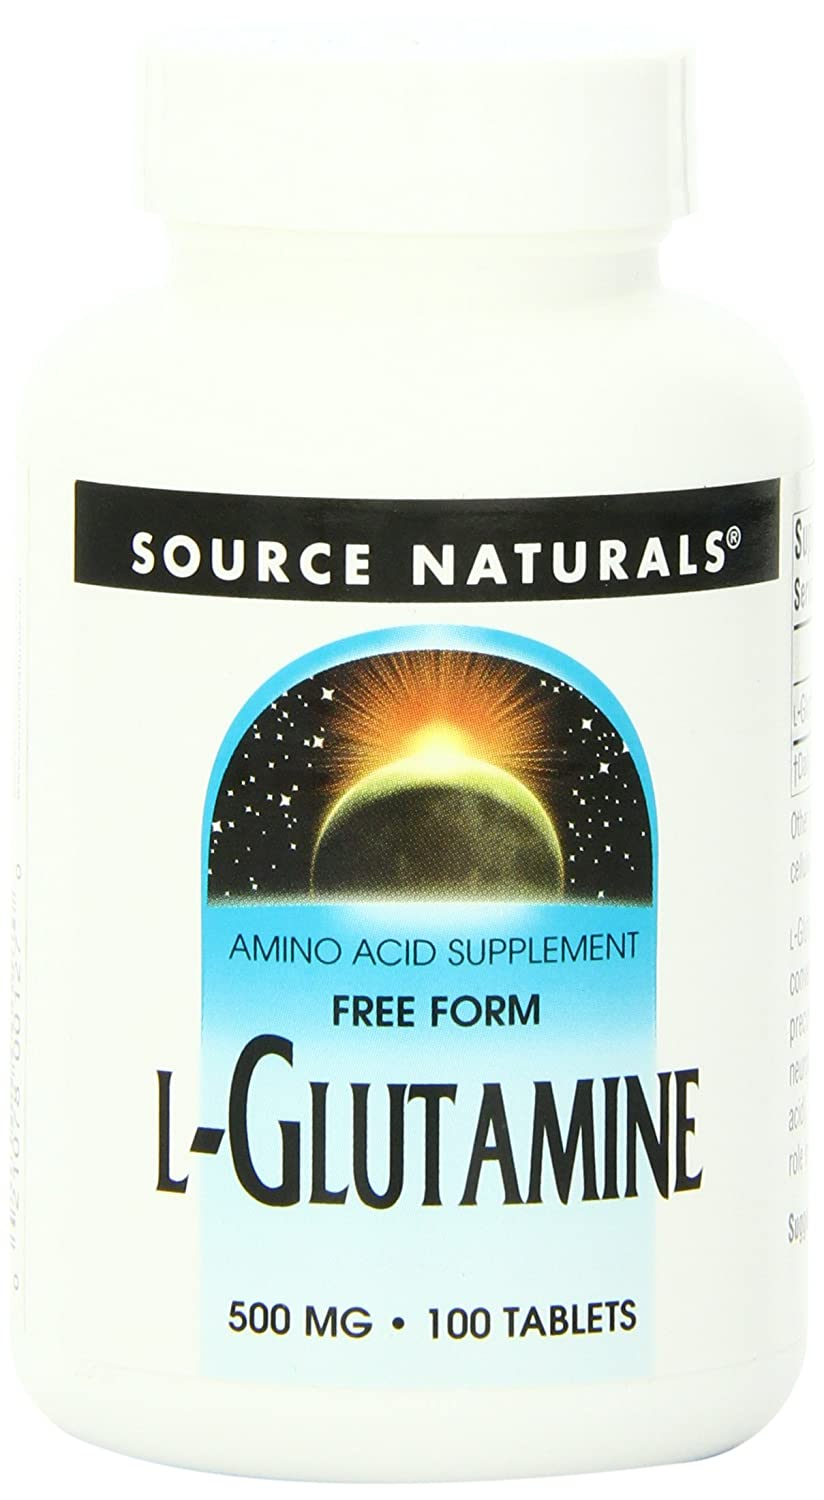 Source Naturals L-Glutamine 500mg, 100 Tablets: Amazon.es: Salud y cuidado personal